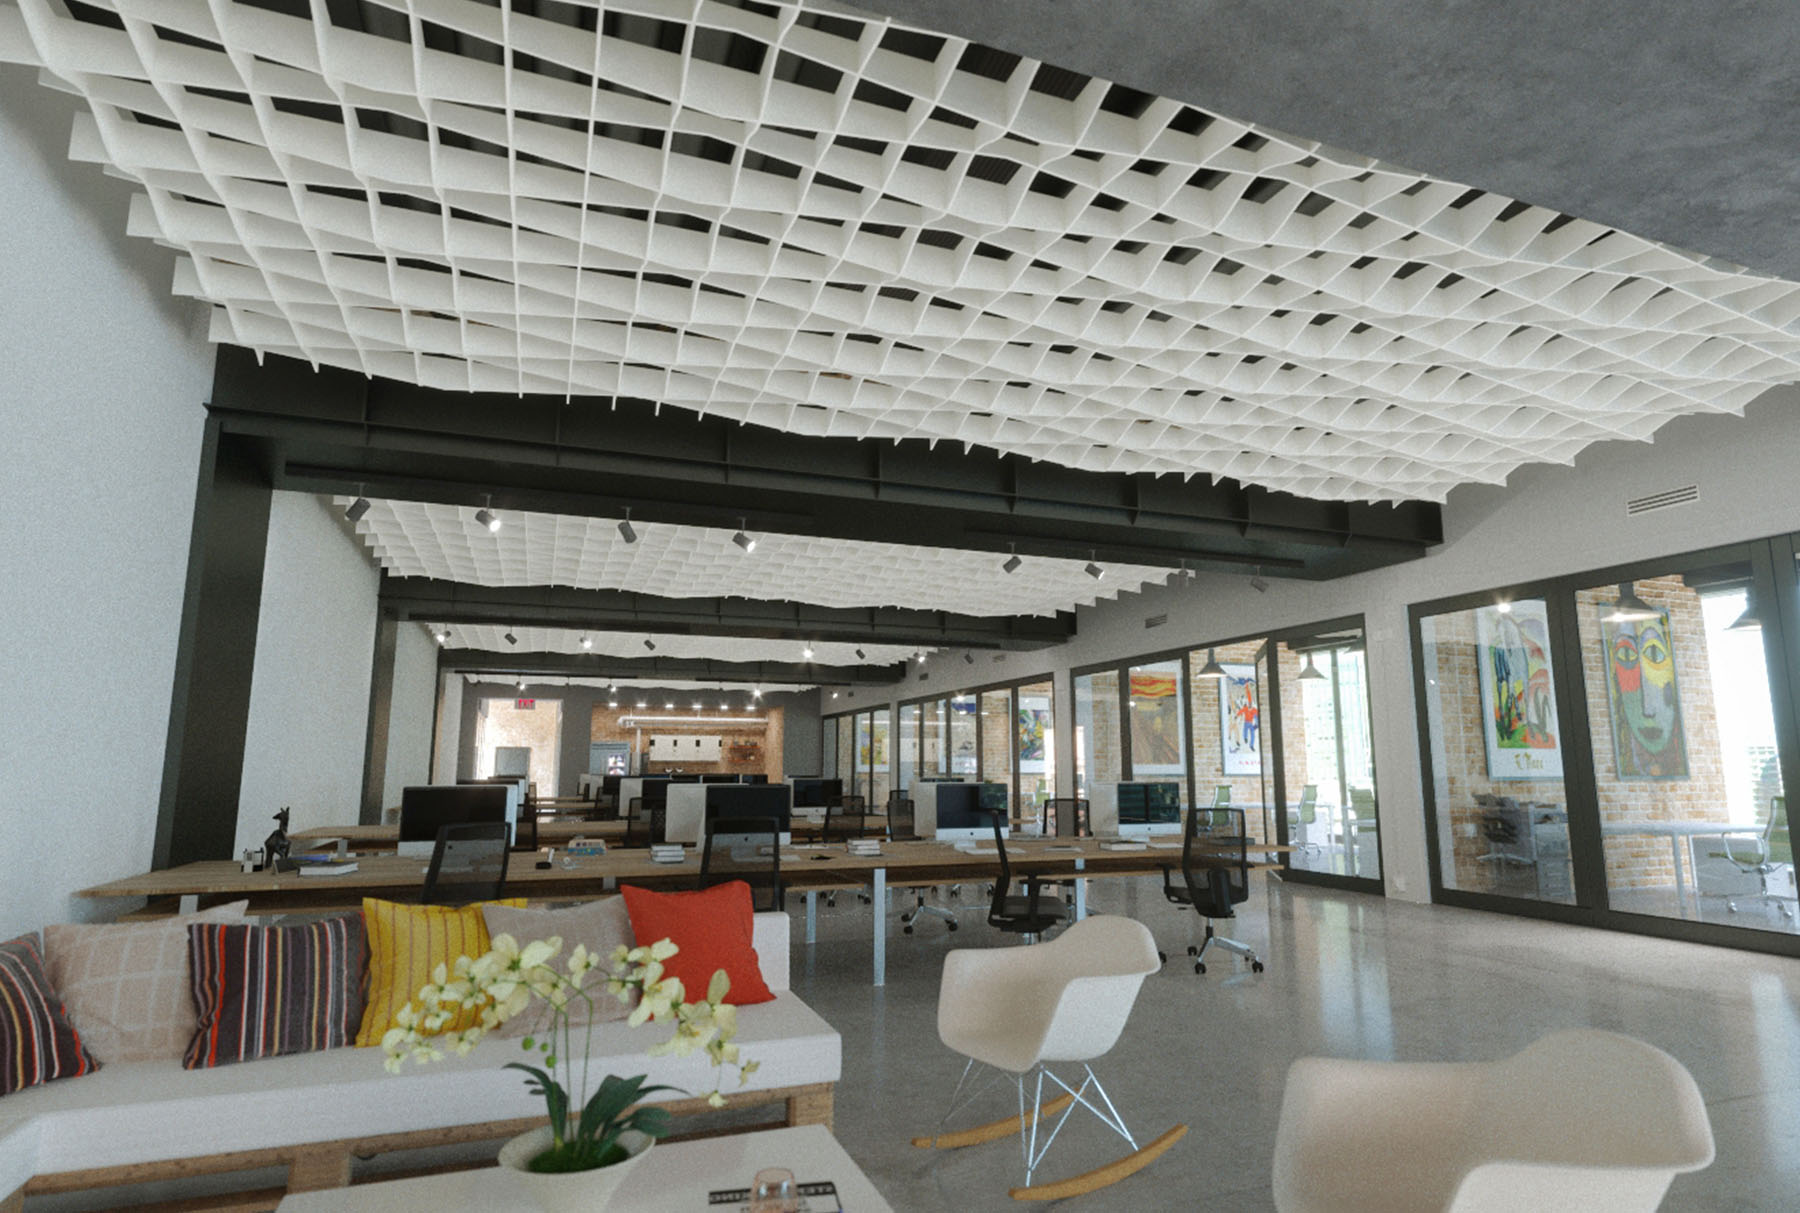 SoftGrid® Sine acoustical system installed in office.